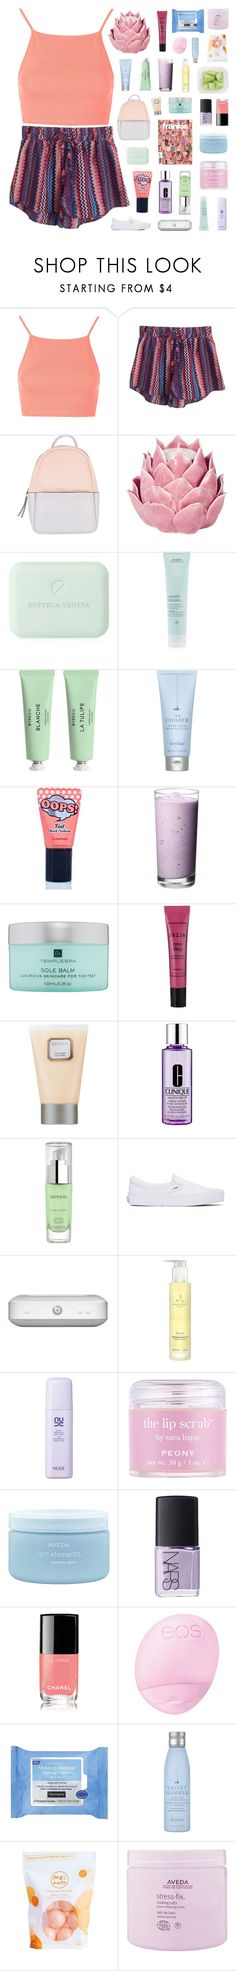 """the colors of this sound like a shape"" by when-you-listen ❤ liked on Polyvore featuring Topshop, Tolani, Calvin Klein, Zara Home, Bottega Veneta, Aveda, Byredo, Drybar, BERRISOM and Temple Spa"